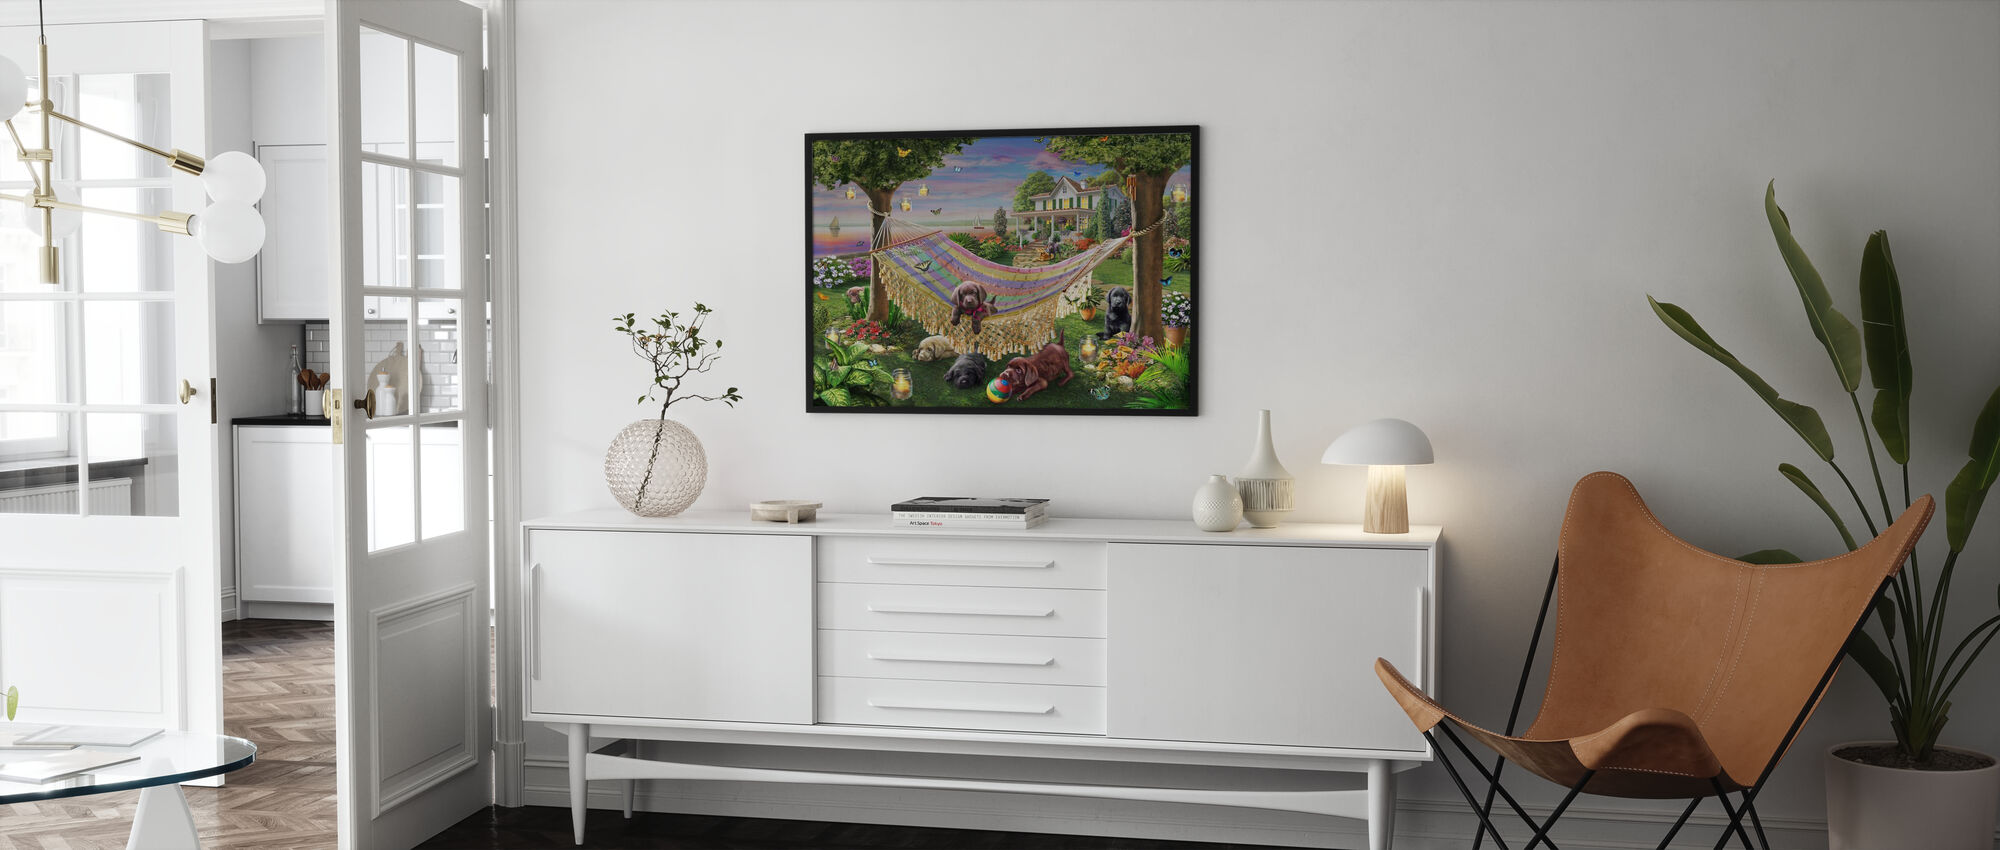 Puppies And Butterflies - Framed print - Living Room